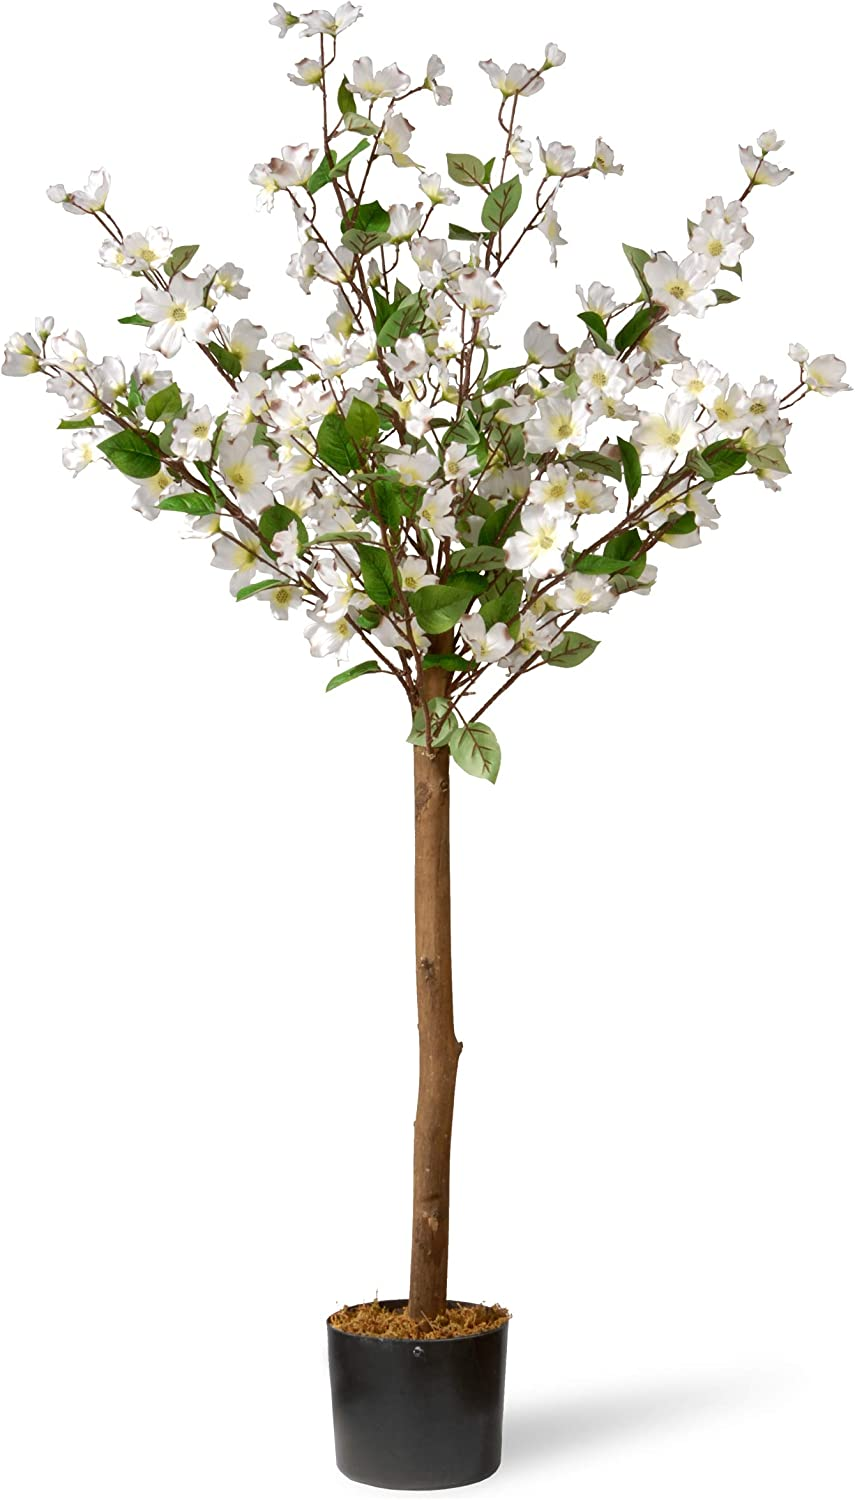 National Tree 4 Ft. Dogwood Tree, White